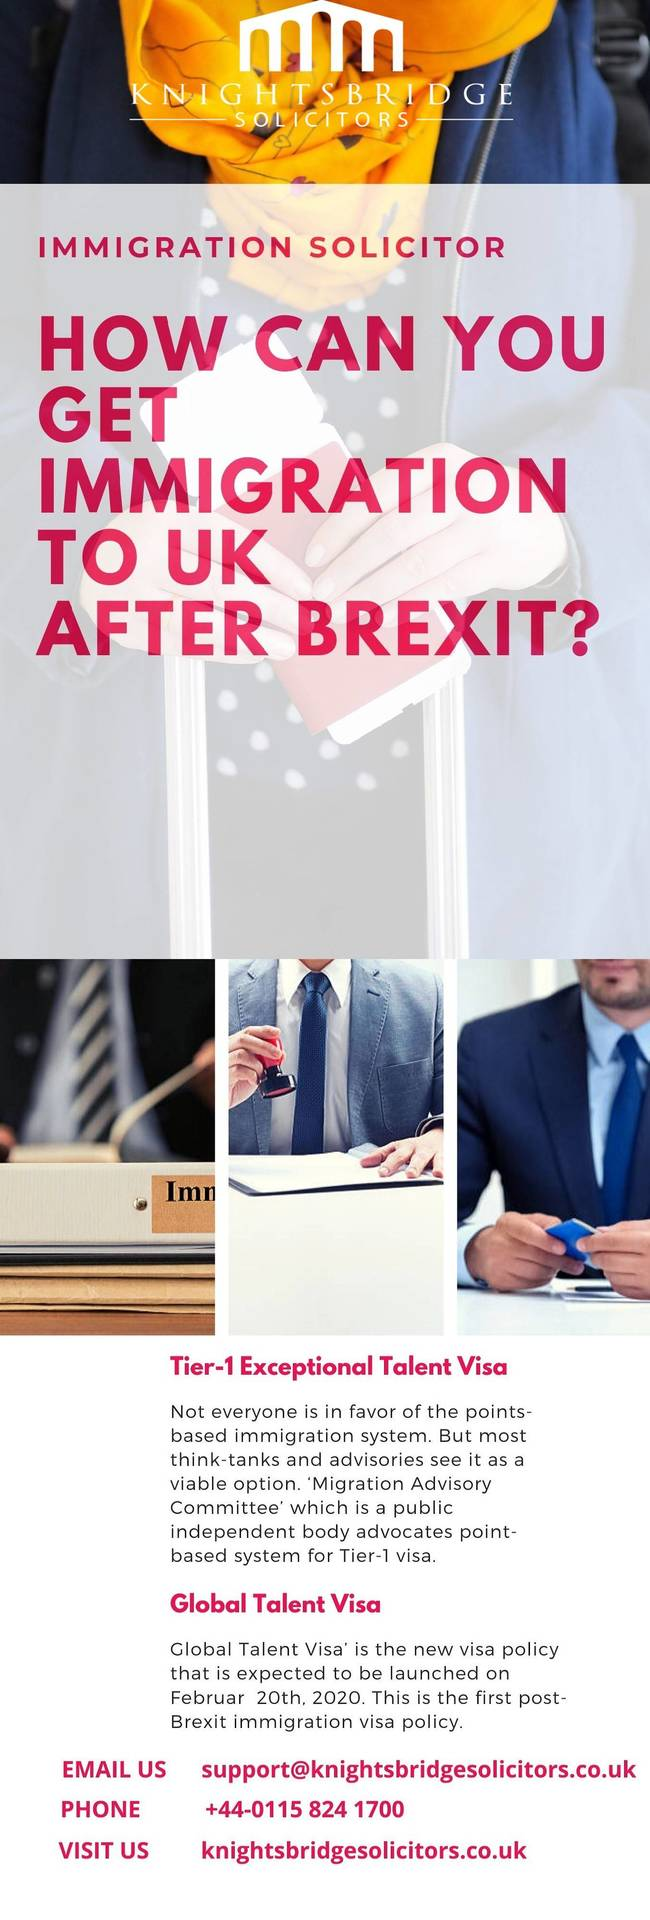 How Can You Get Immigration to UK after Brexit? image